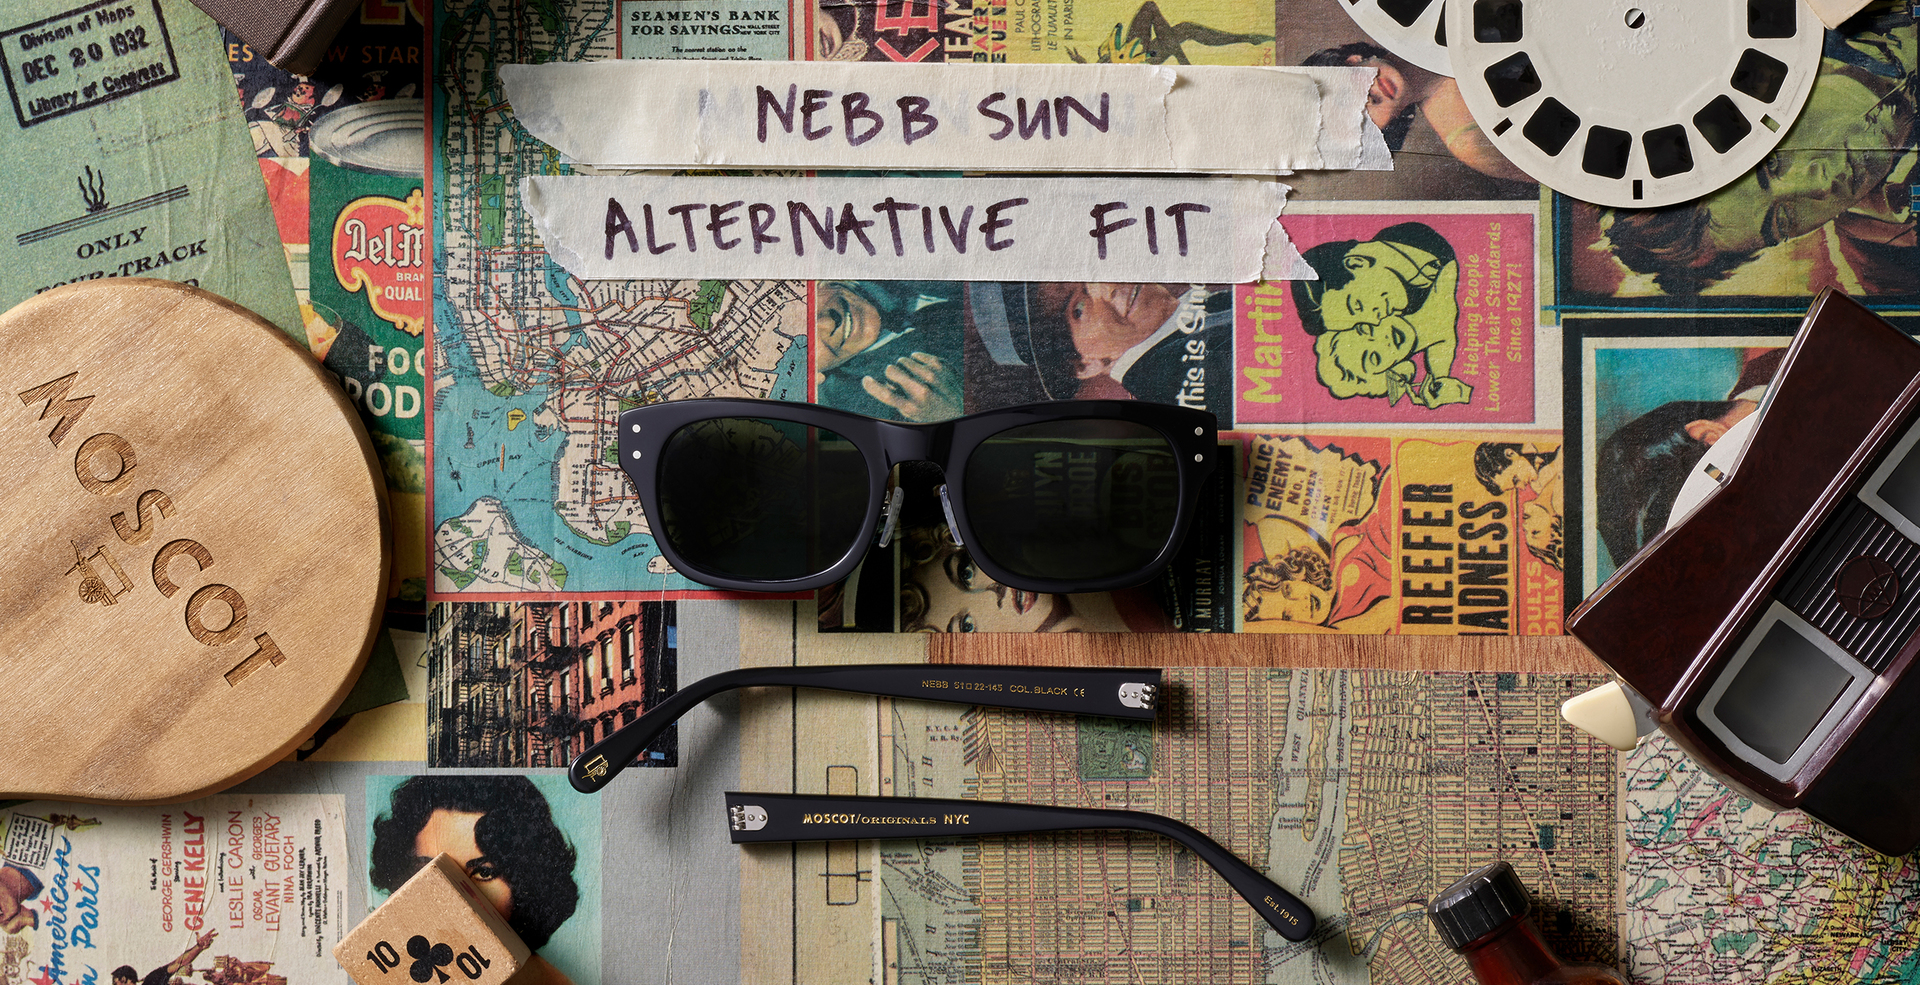 NEBB SUN Alternative Fit